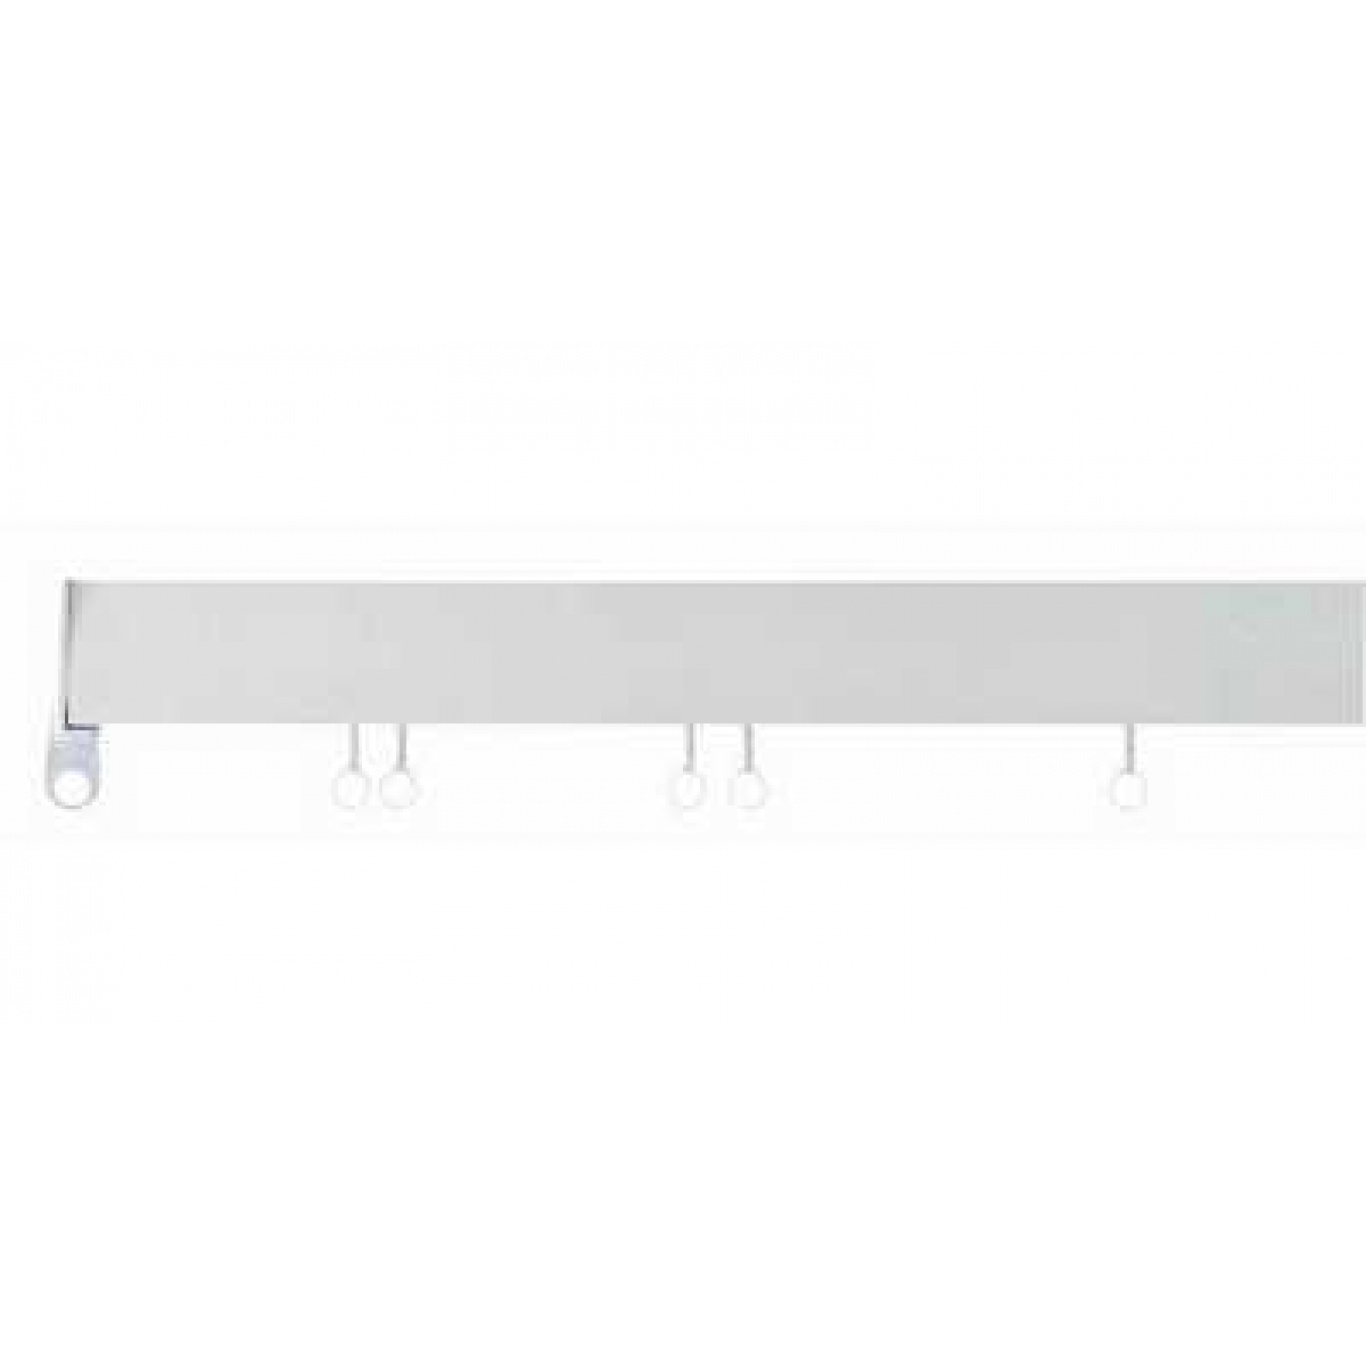 Image of Swish Deluxe White PVC Track 175cm